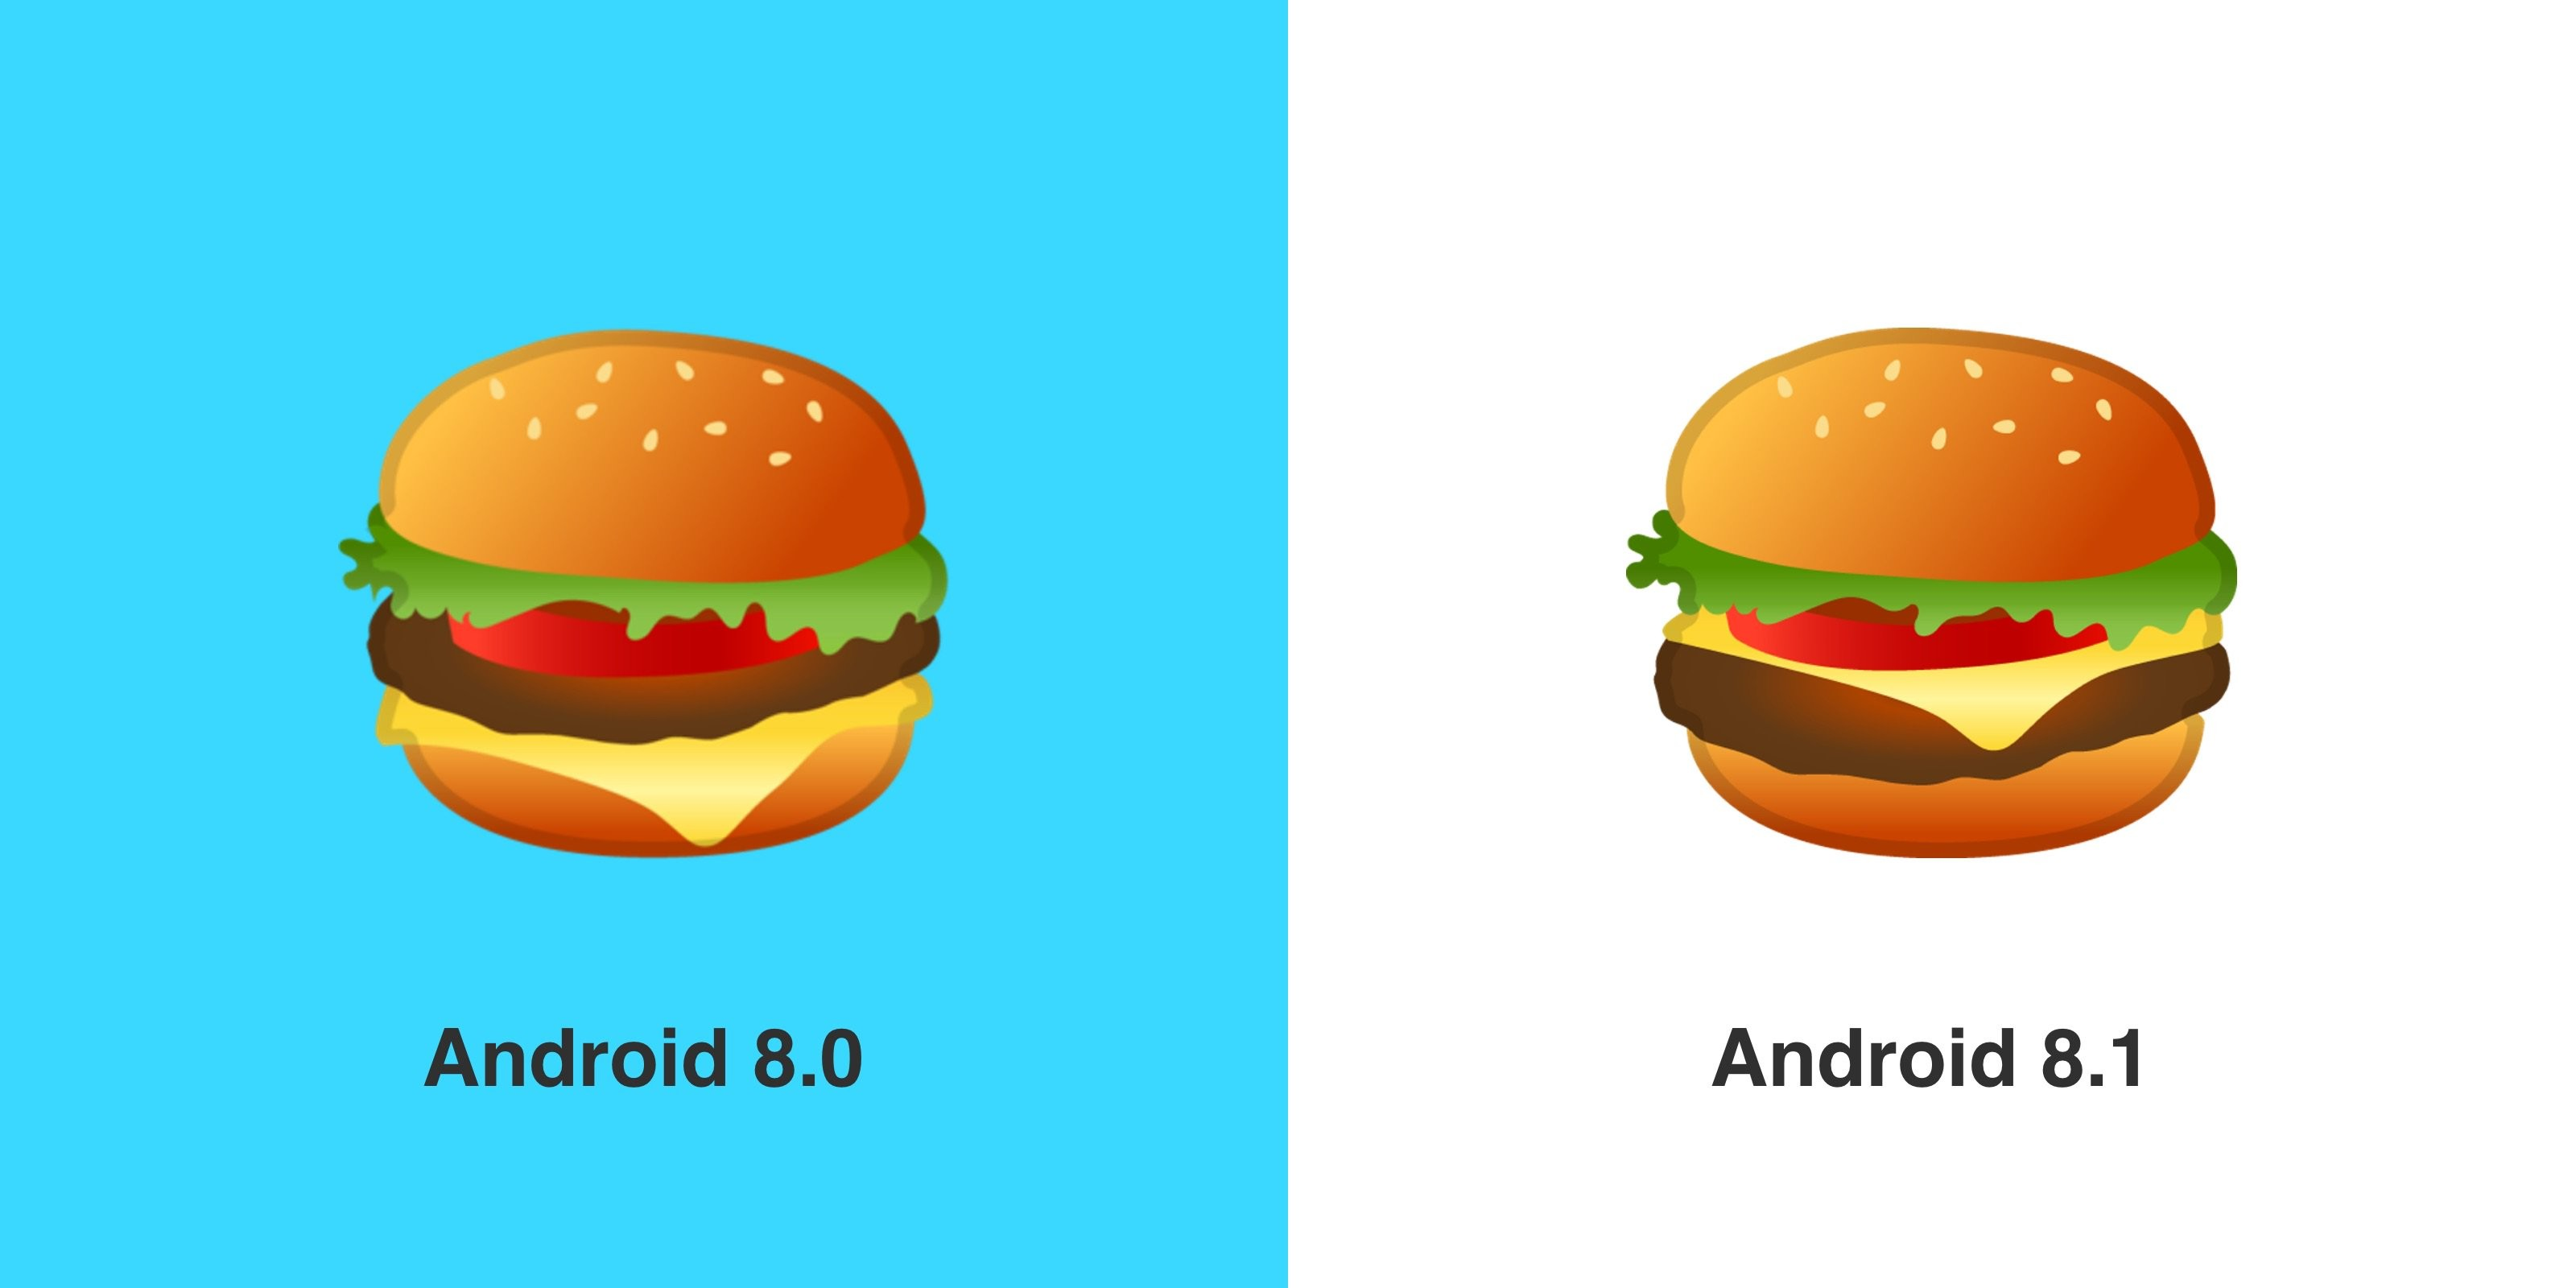 Finally the great Android Burger Emoji Crisis of 2017 solved by Google